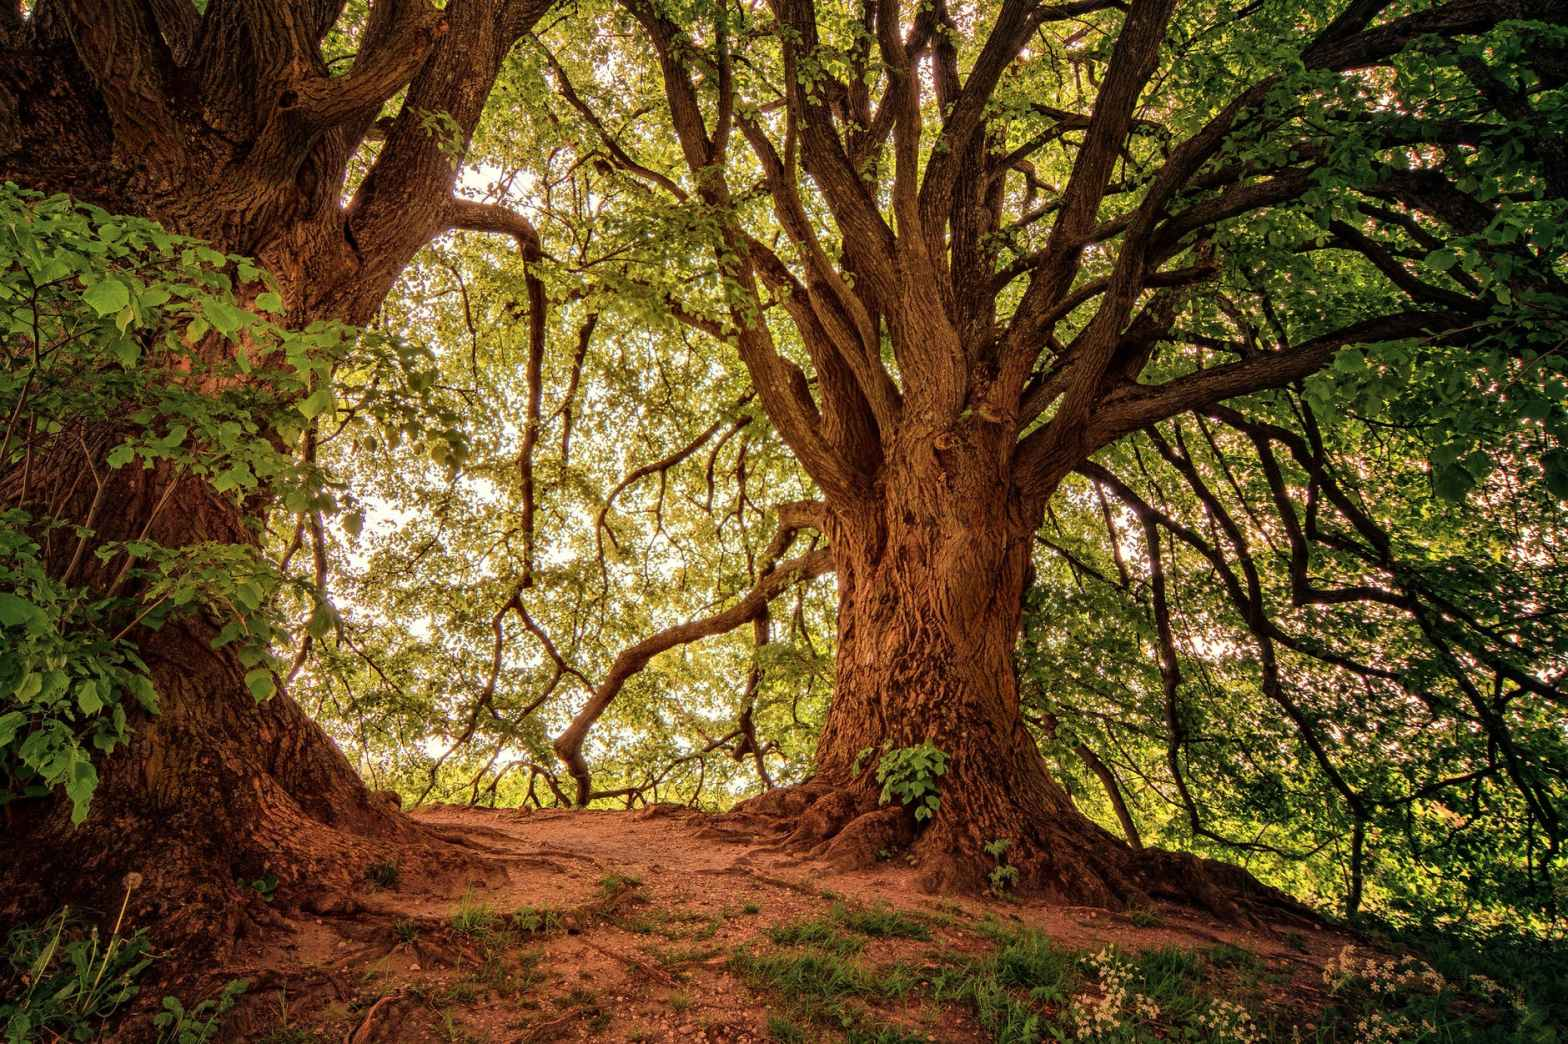 Security - a large sturdy tree with smaller plants around it, representing security and interdependence